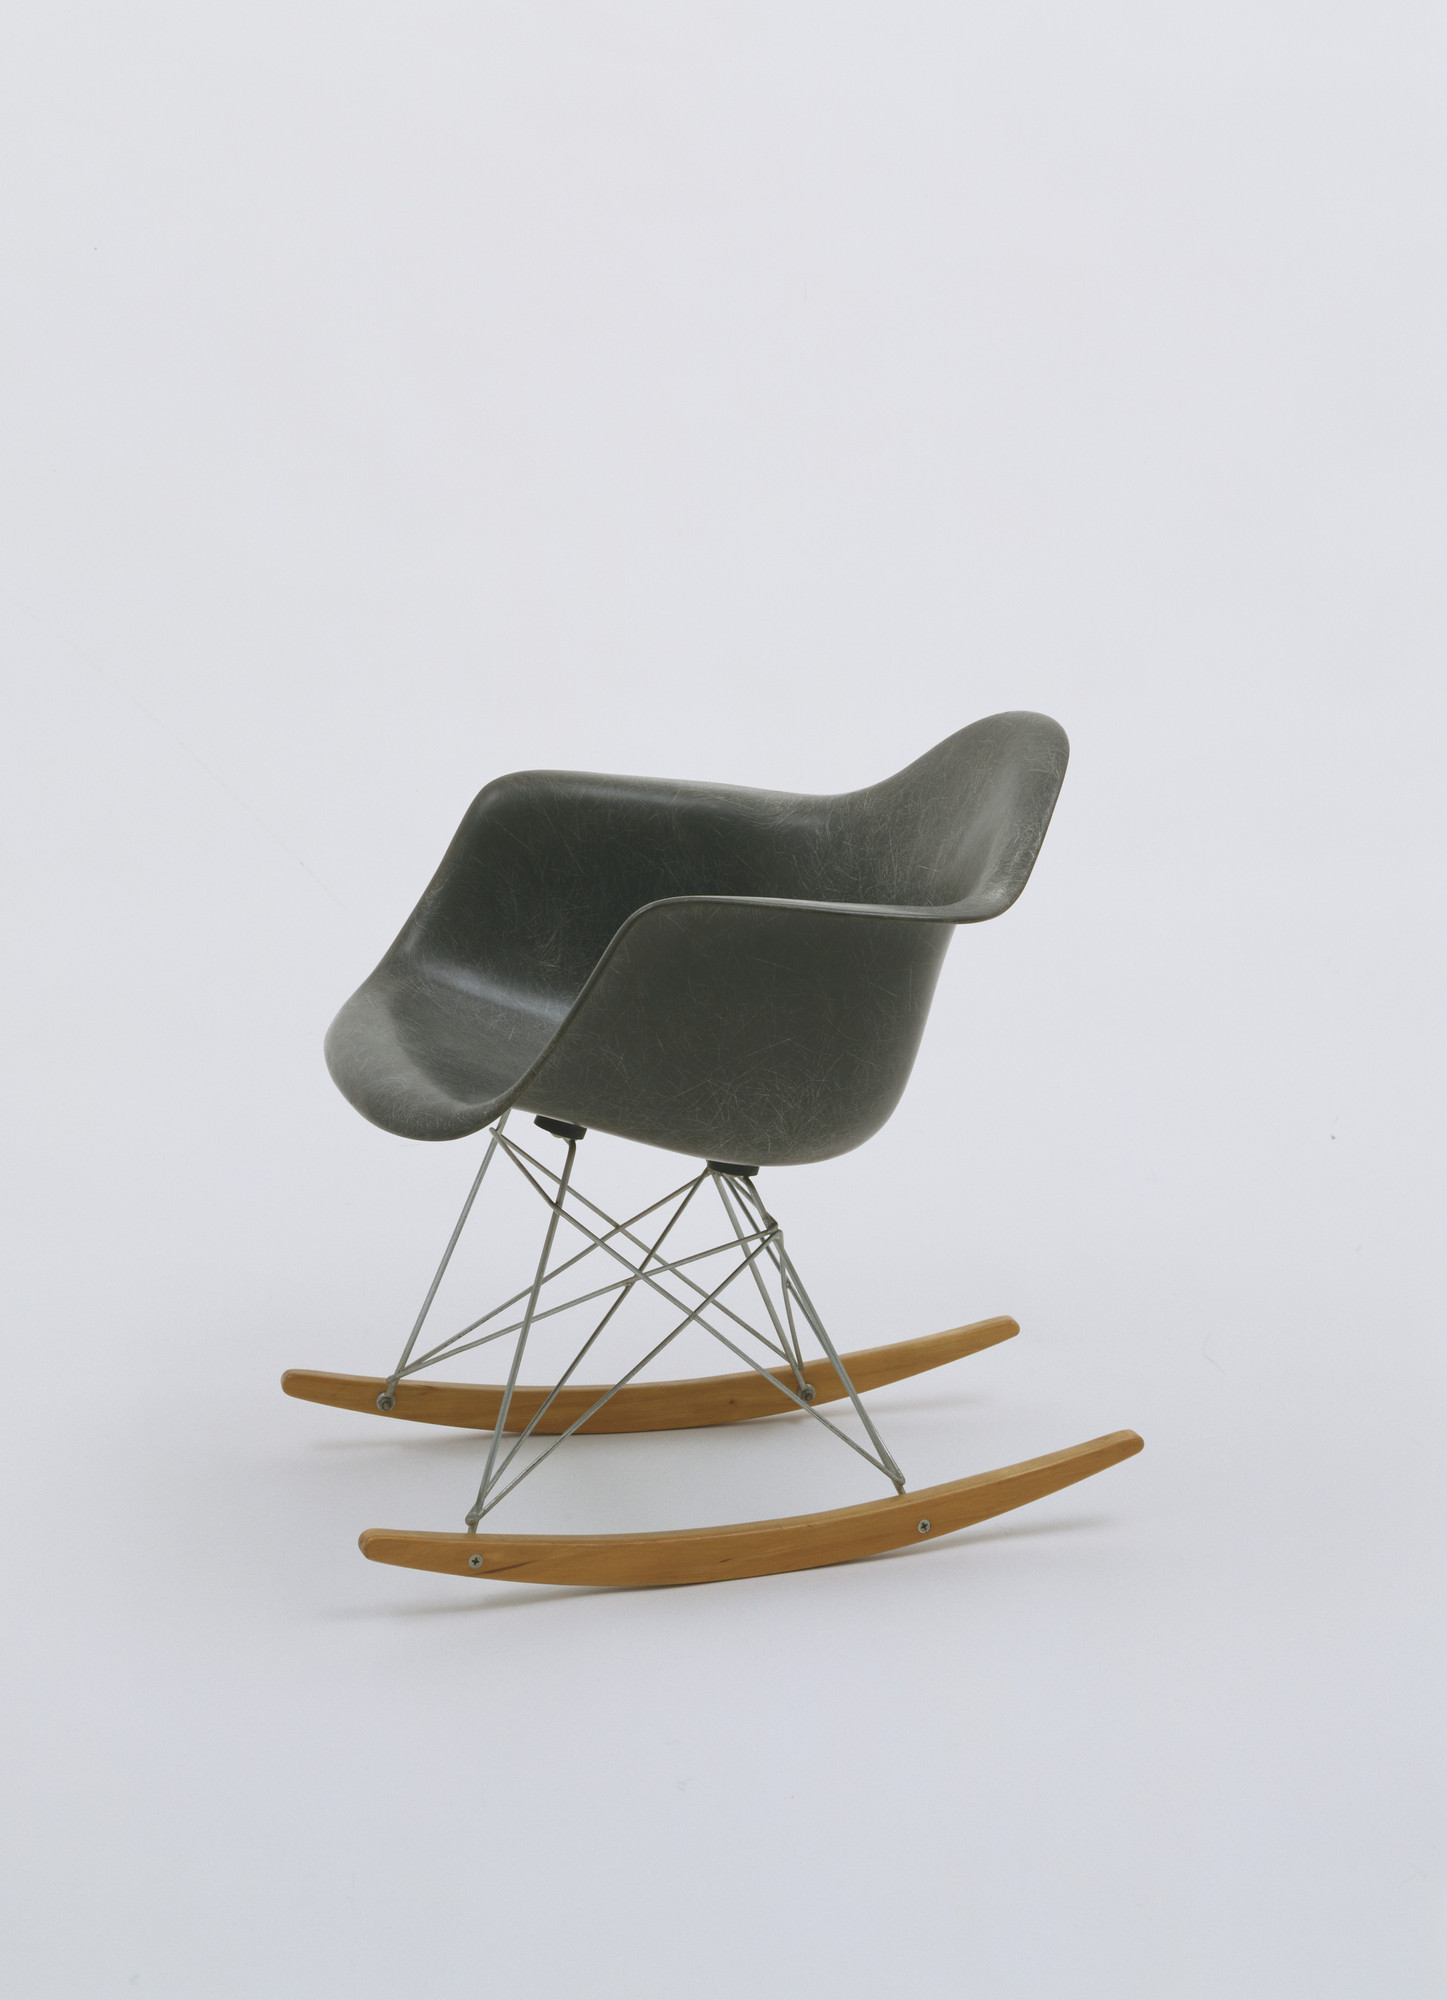 Phenomenal Charles Eames Ray Eames Rocking Armchair Model Rar 1948 Unemploymentrelief Wooden Chair Designs For Living Room Unemploymentrelieforg